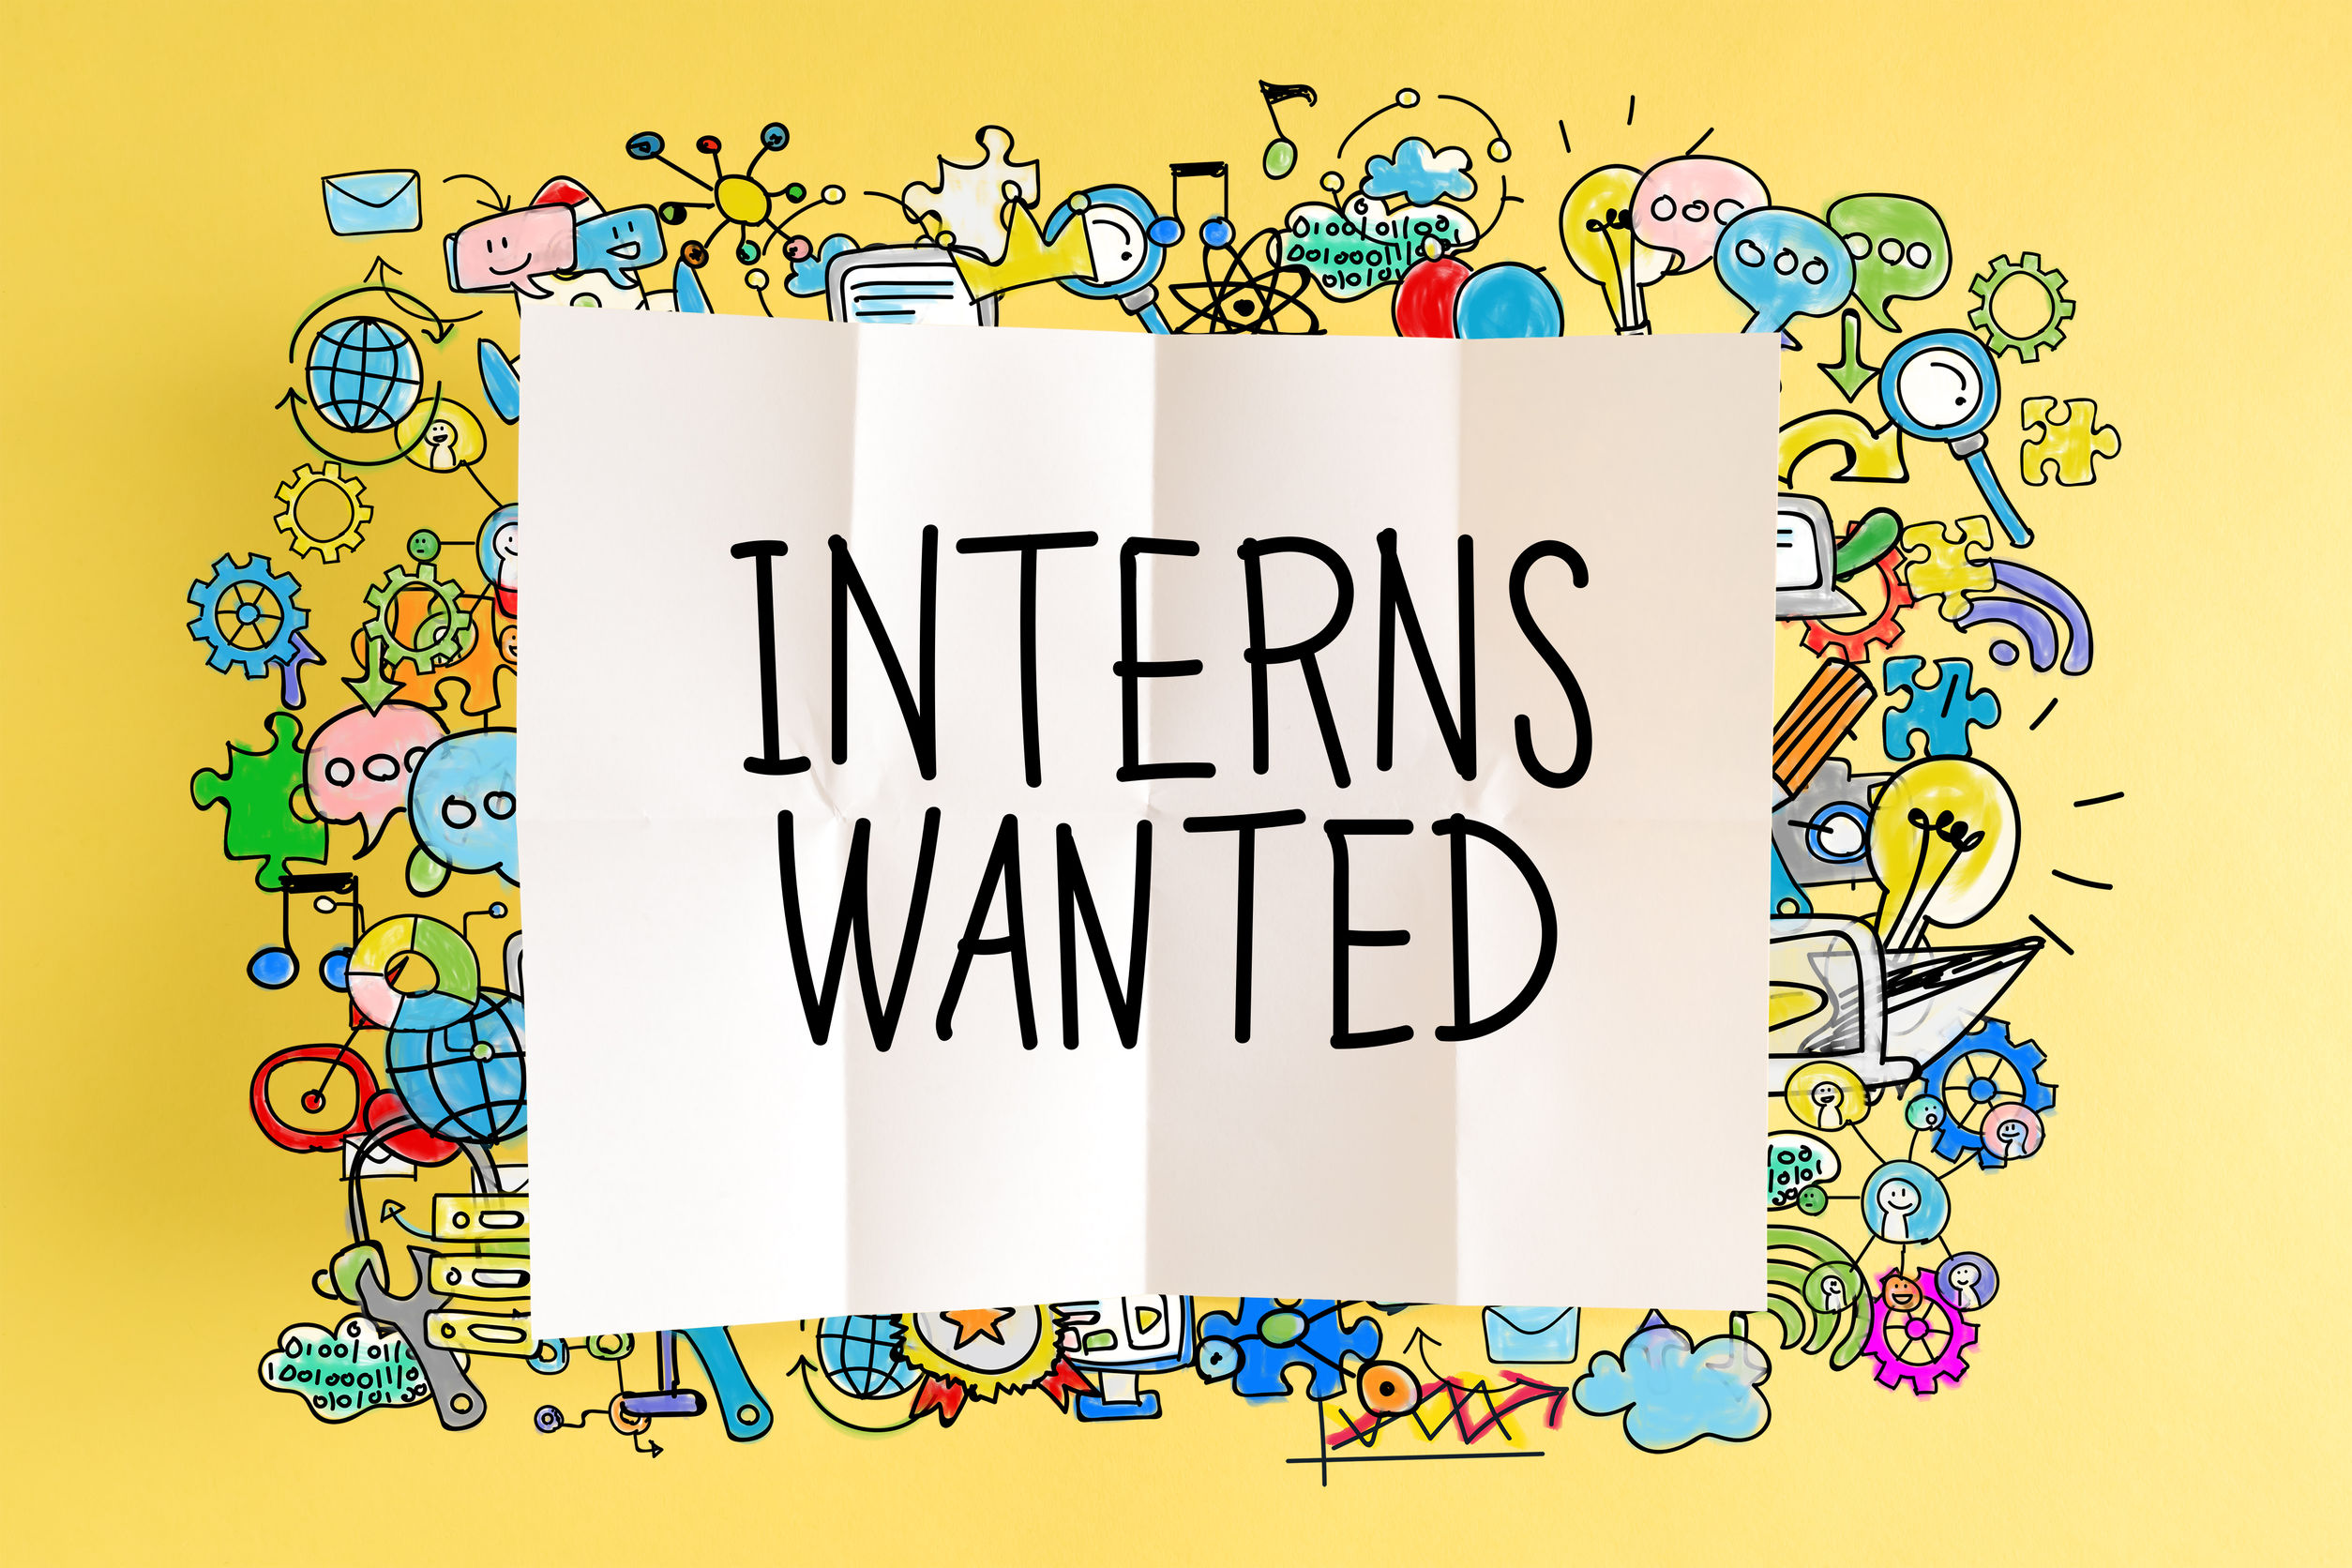 Internship opportunities!